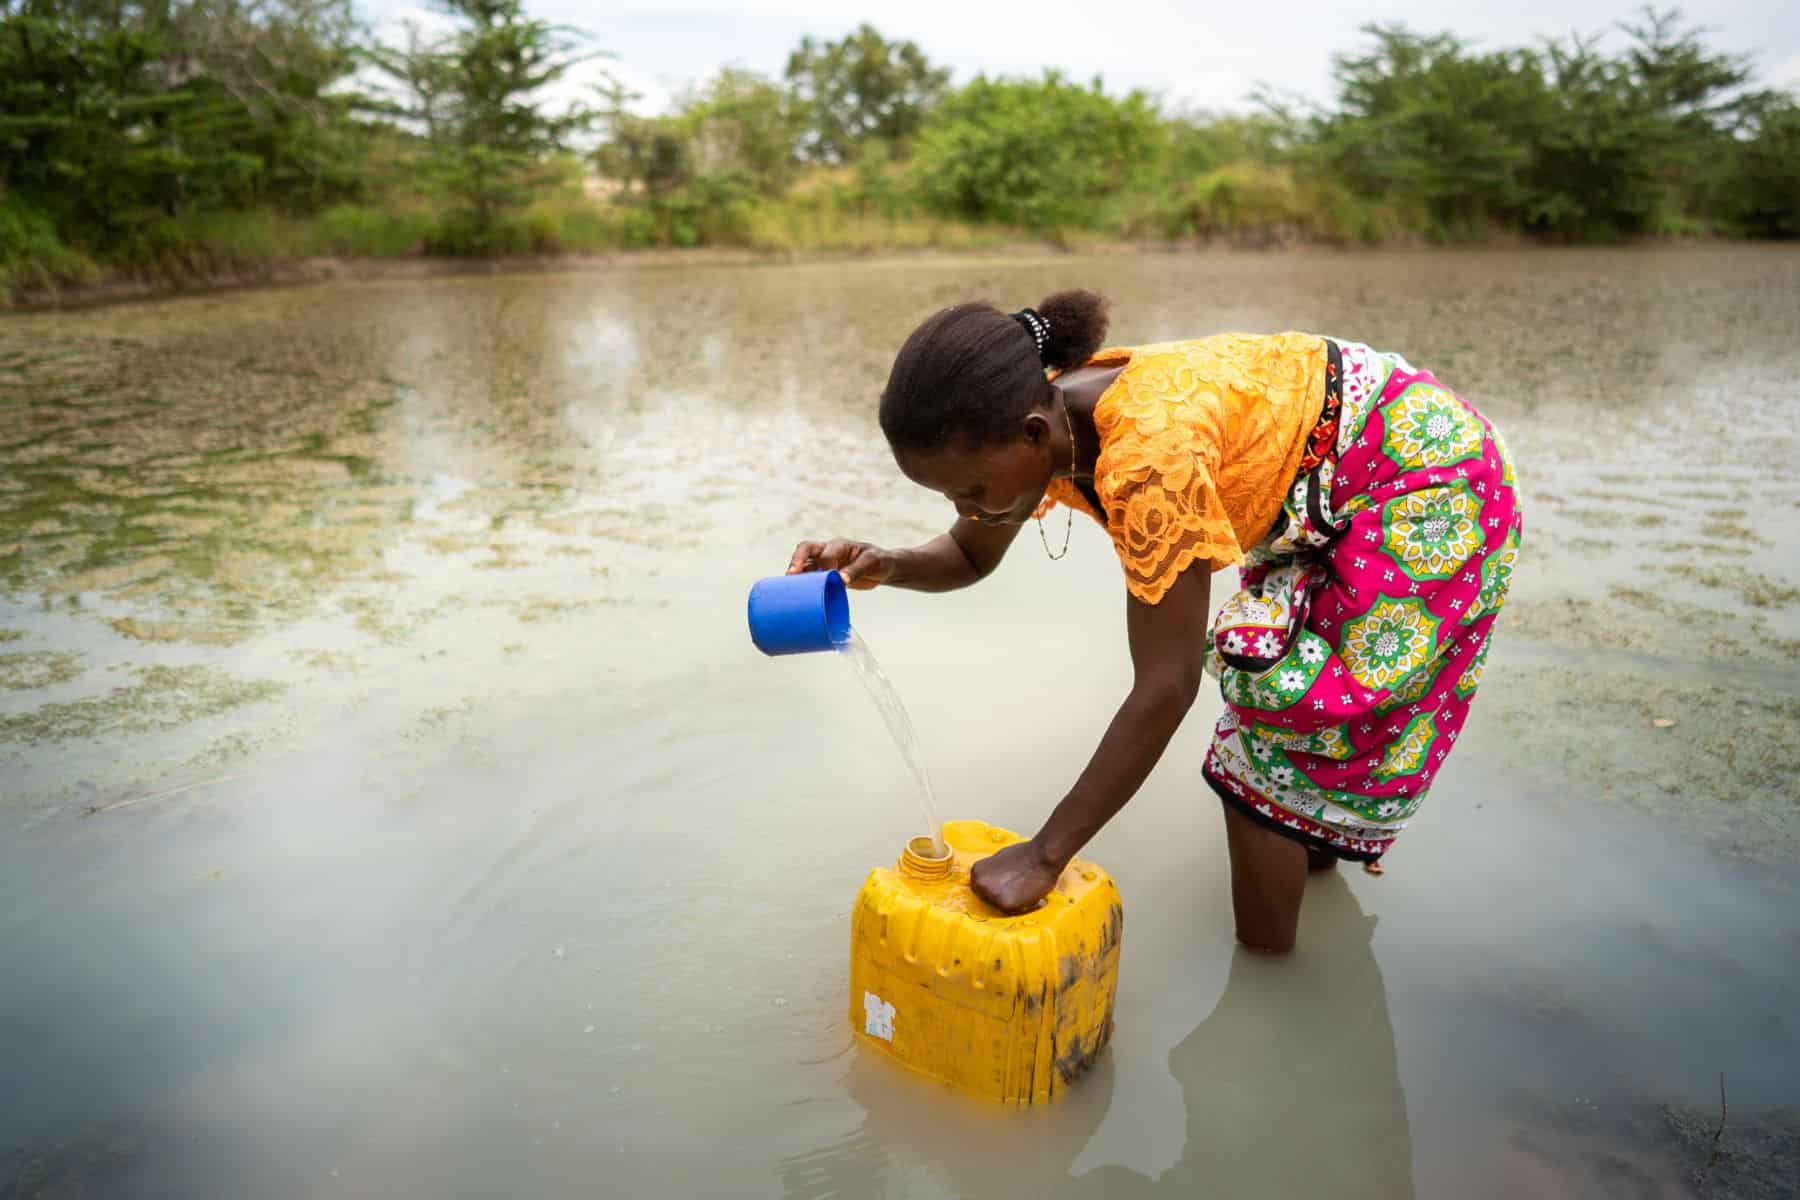 Samaritan's Purse is creating water pans/ponds in communities where water scarcity presents daily challenges and stress.